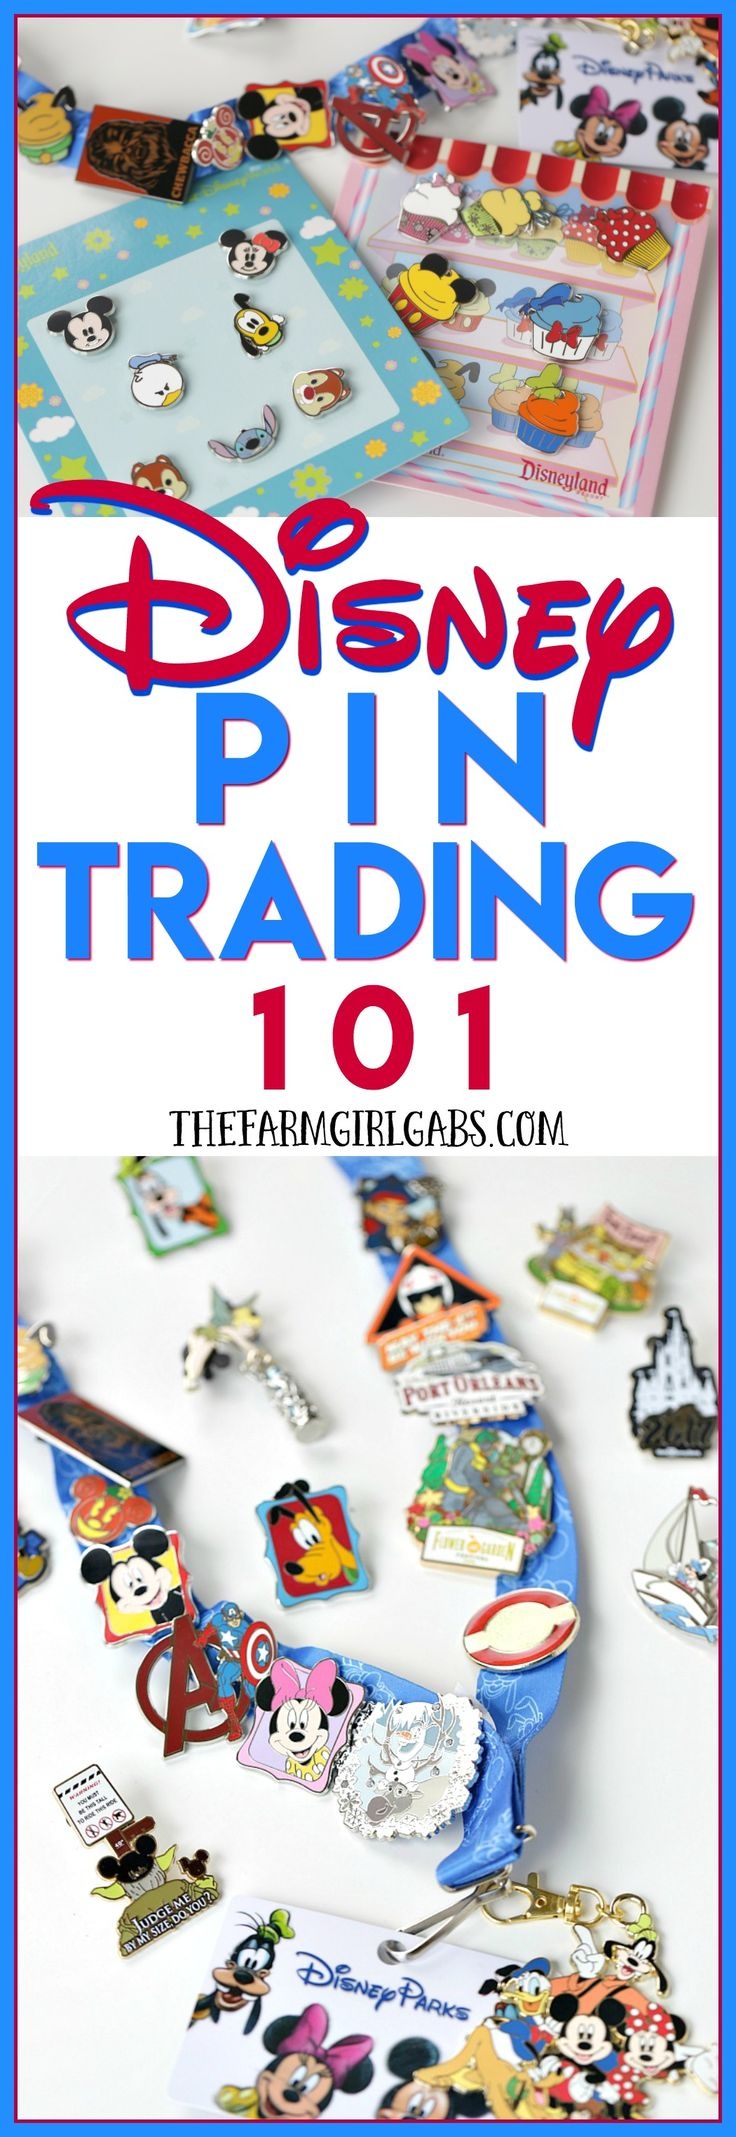 Disney Pin Trading is a fun way to collect souvenir pins from the Disney Parks! Here are the basic tips and guidelines for Disney Pin Trading 101 at Walt Disney World.